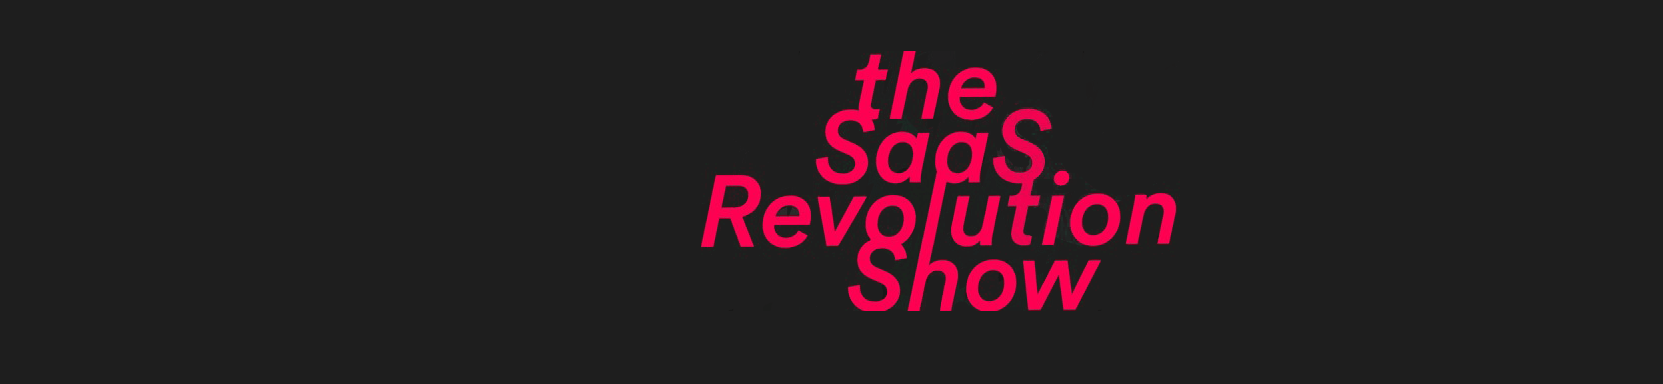 the SaaS Revolution Show Podcast